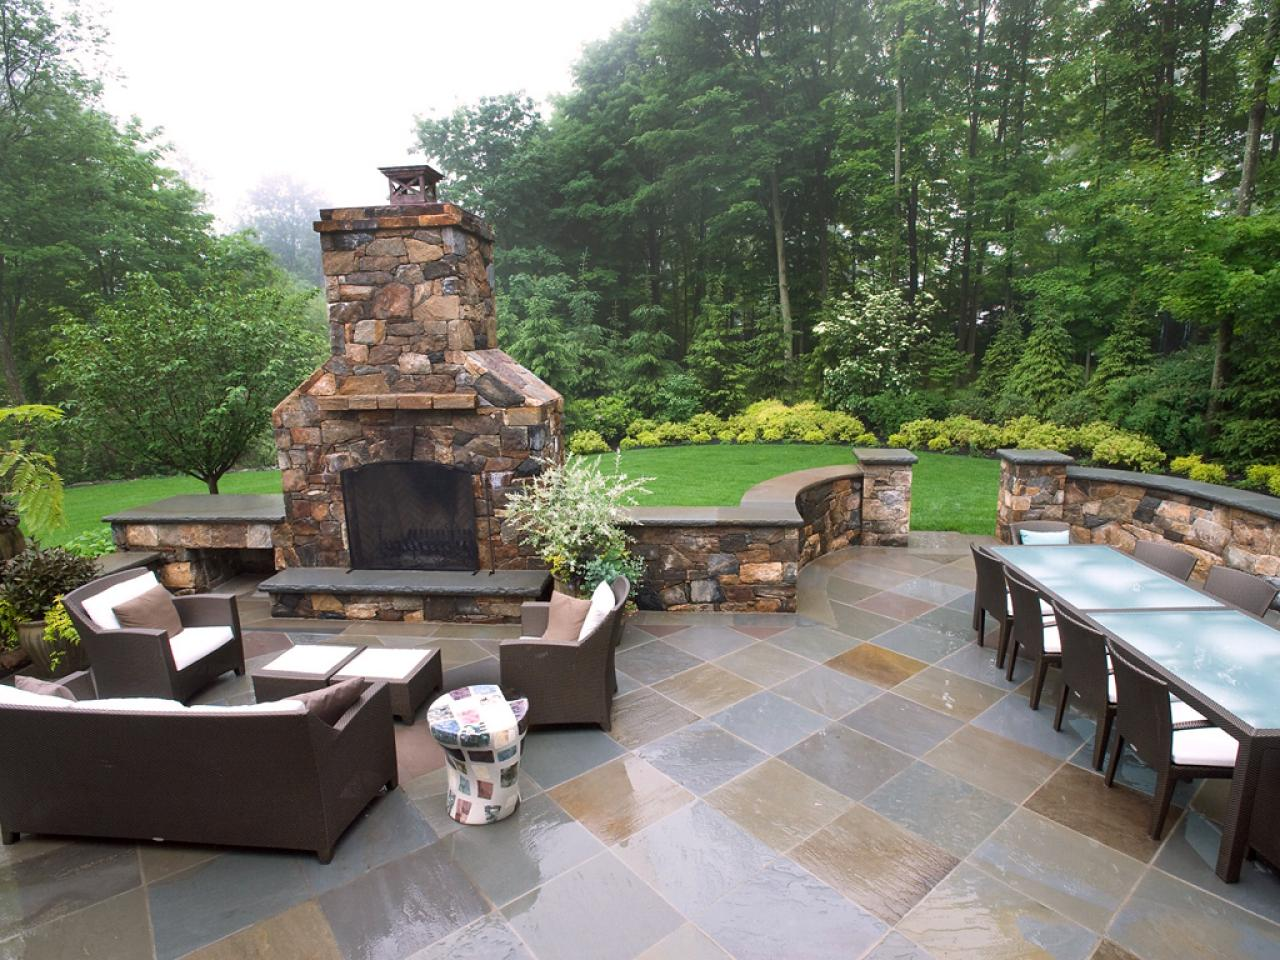 Patio Design & Installation-Garland TX Professional Landscapers & Outdoor Living Designs-We offer Landscape Design, Outdoor Patios & Pergolas, Outdoor Living Spaces, Stonescapes, Residential & Commercial Landscaping, Irrigation Installation & Repairs, Drainage Systems, Landscape Lighting, Outdoor Living Spaces, Tree Service, Lawn Service, and more.